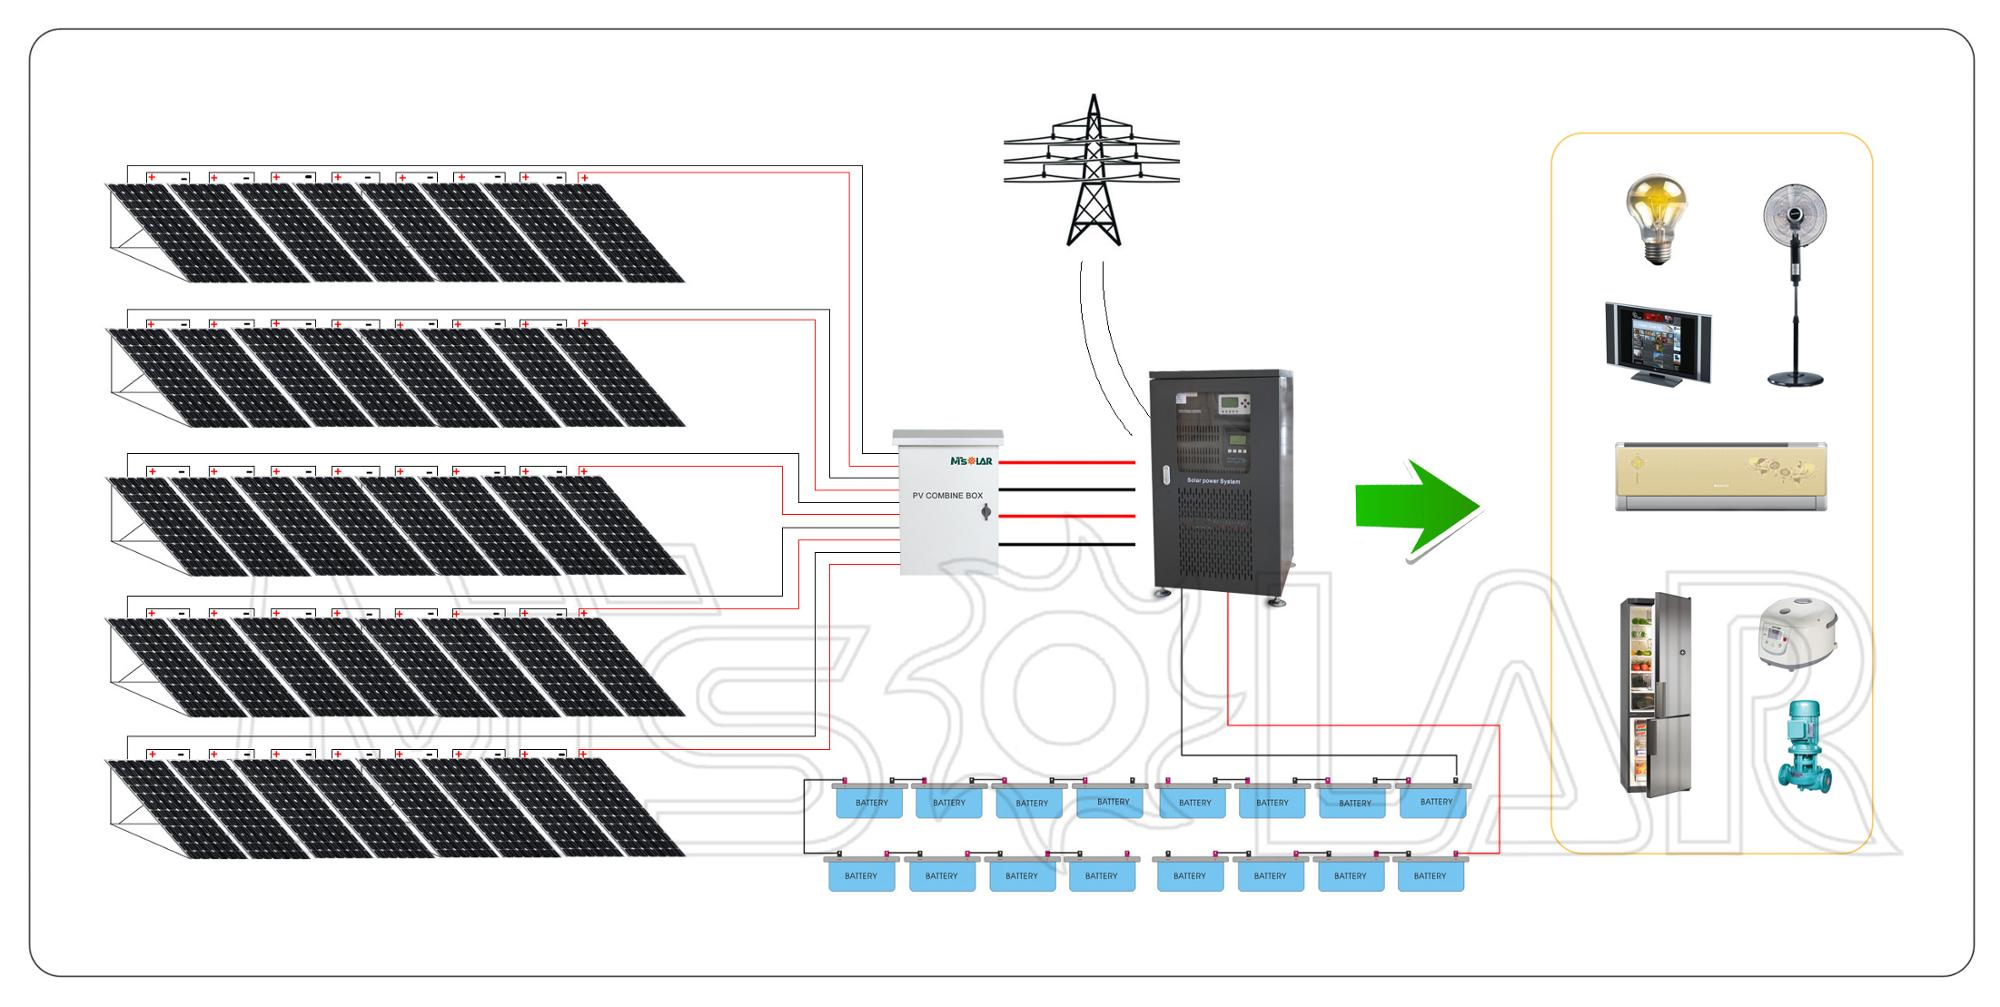 Model 15KW whole house 15kw 20KW solar power system / complete kit solar panel 10KW 15KW 20KW / 10000 watt solar panel system